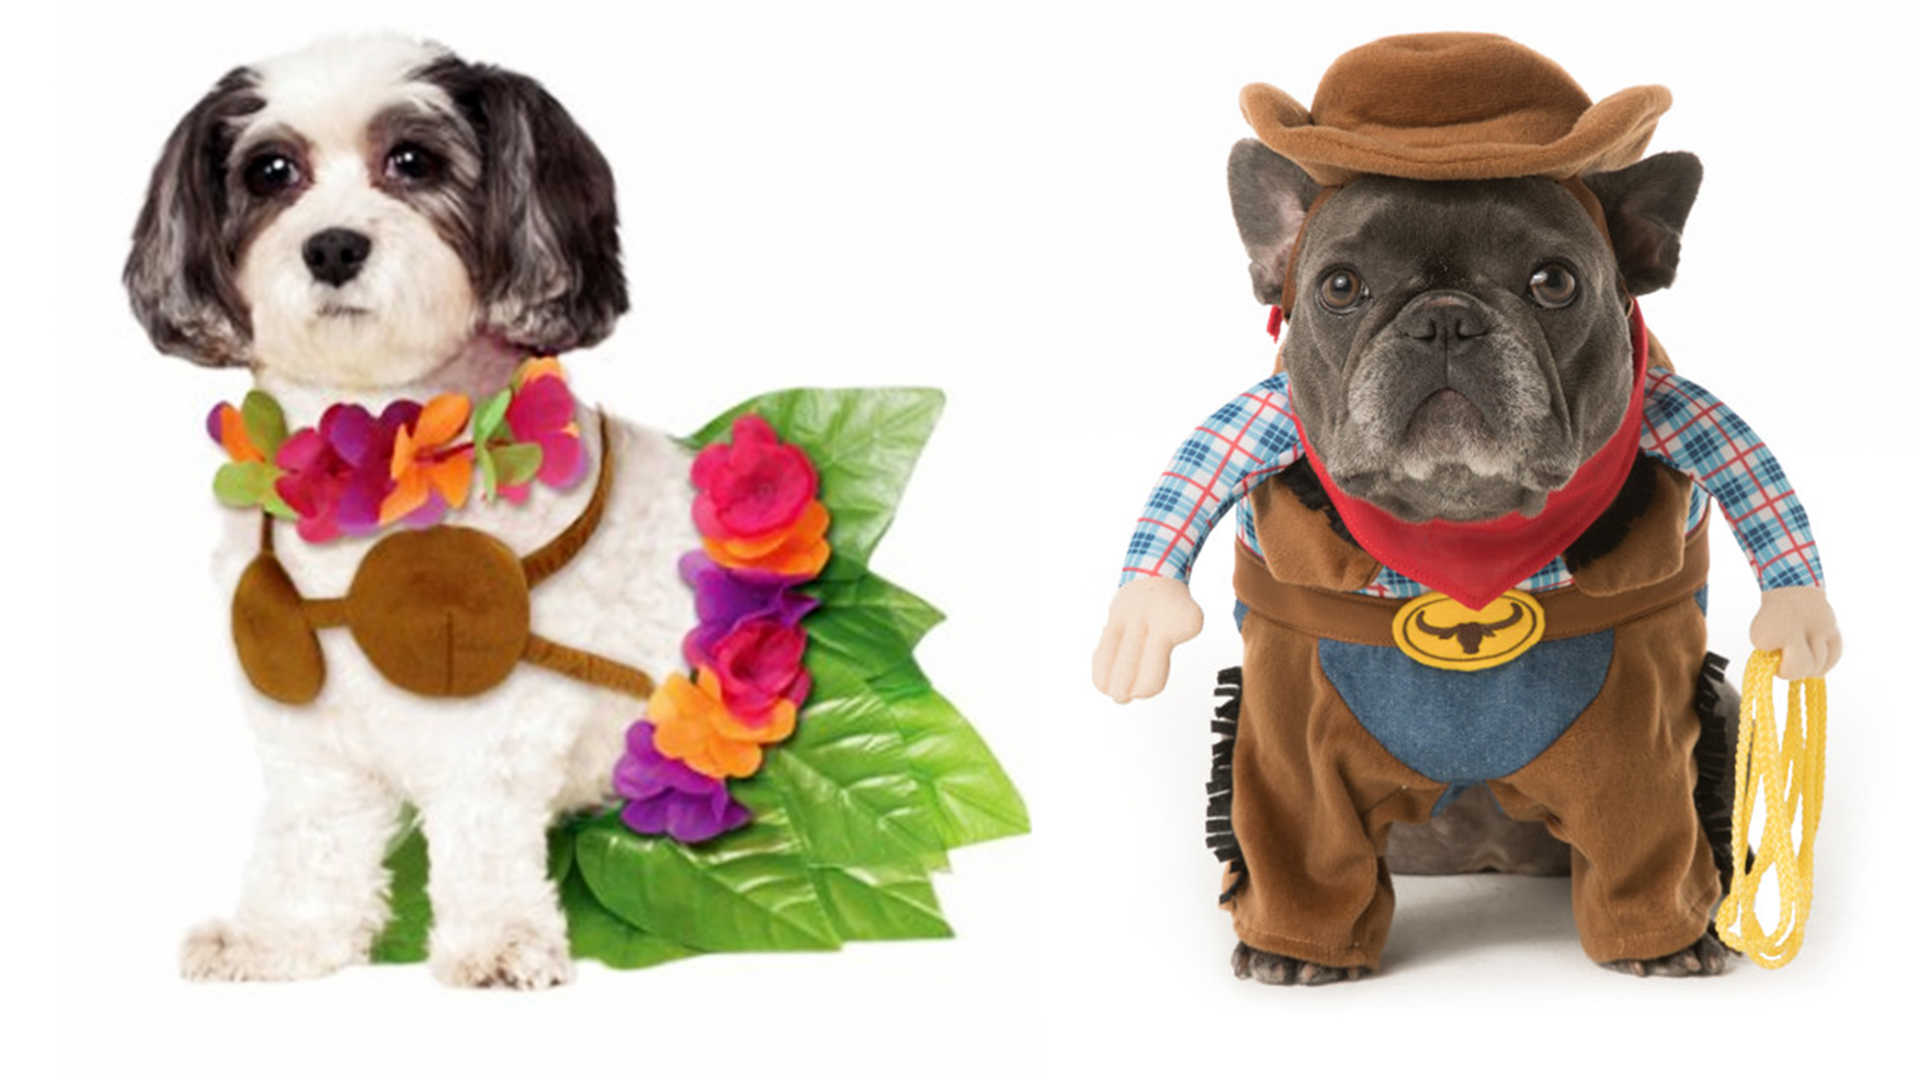 sc 1 st  Today Show & Halloween dog costume ideas: 32 easy cute costumes for your canine